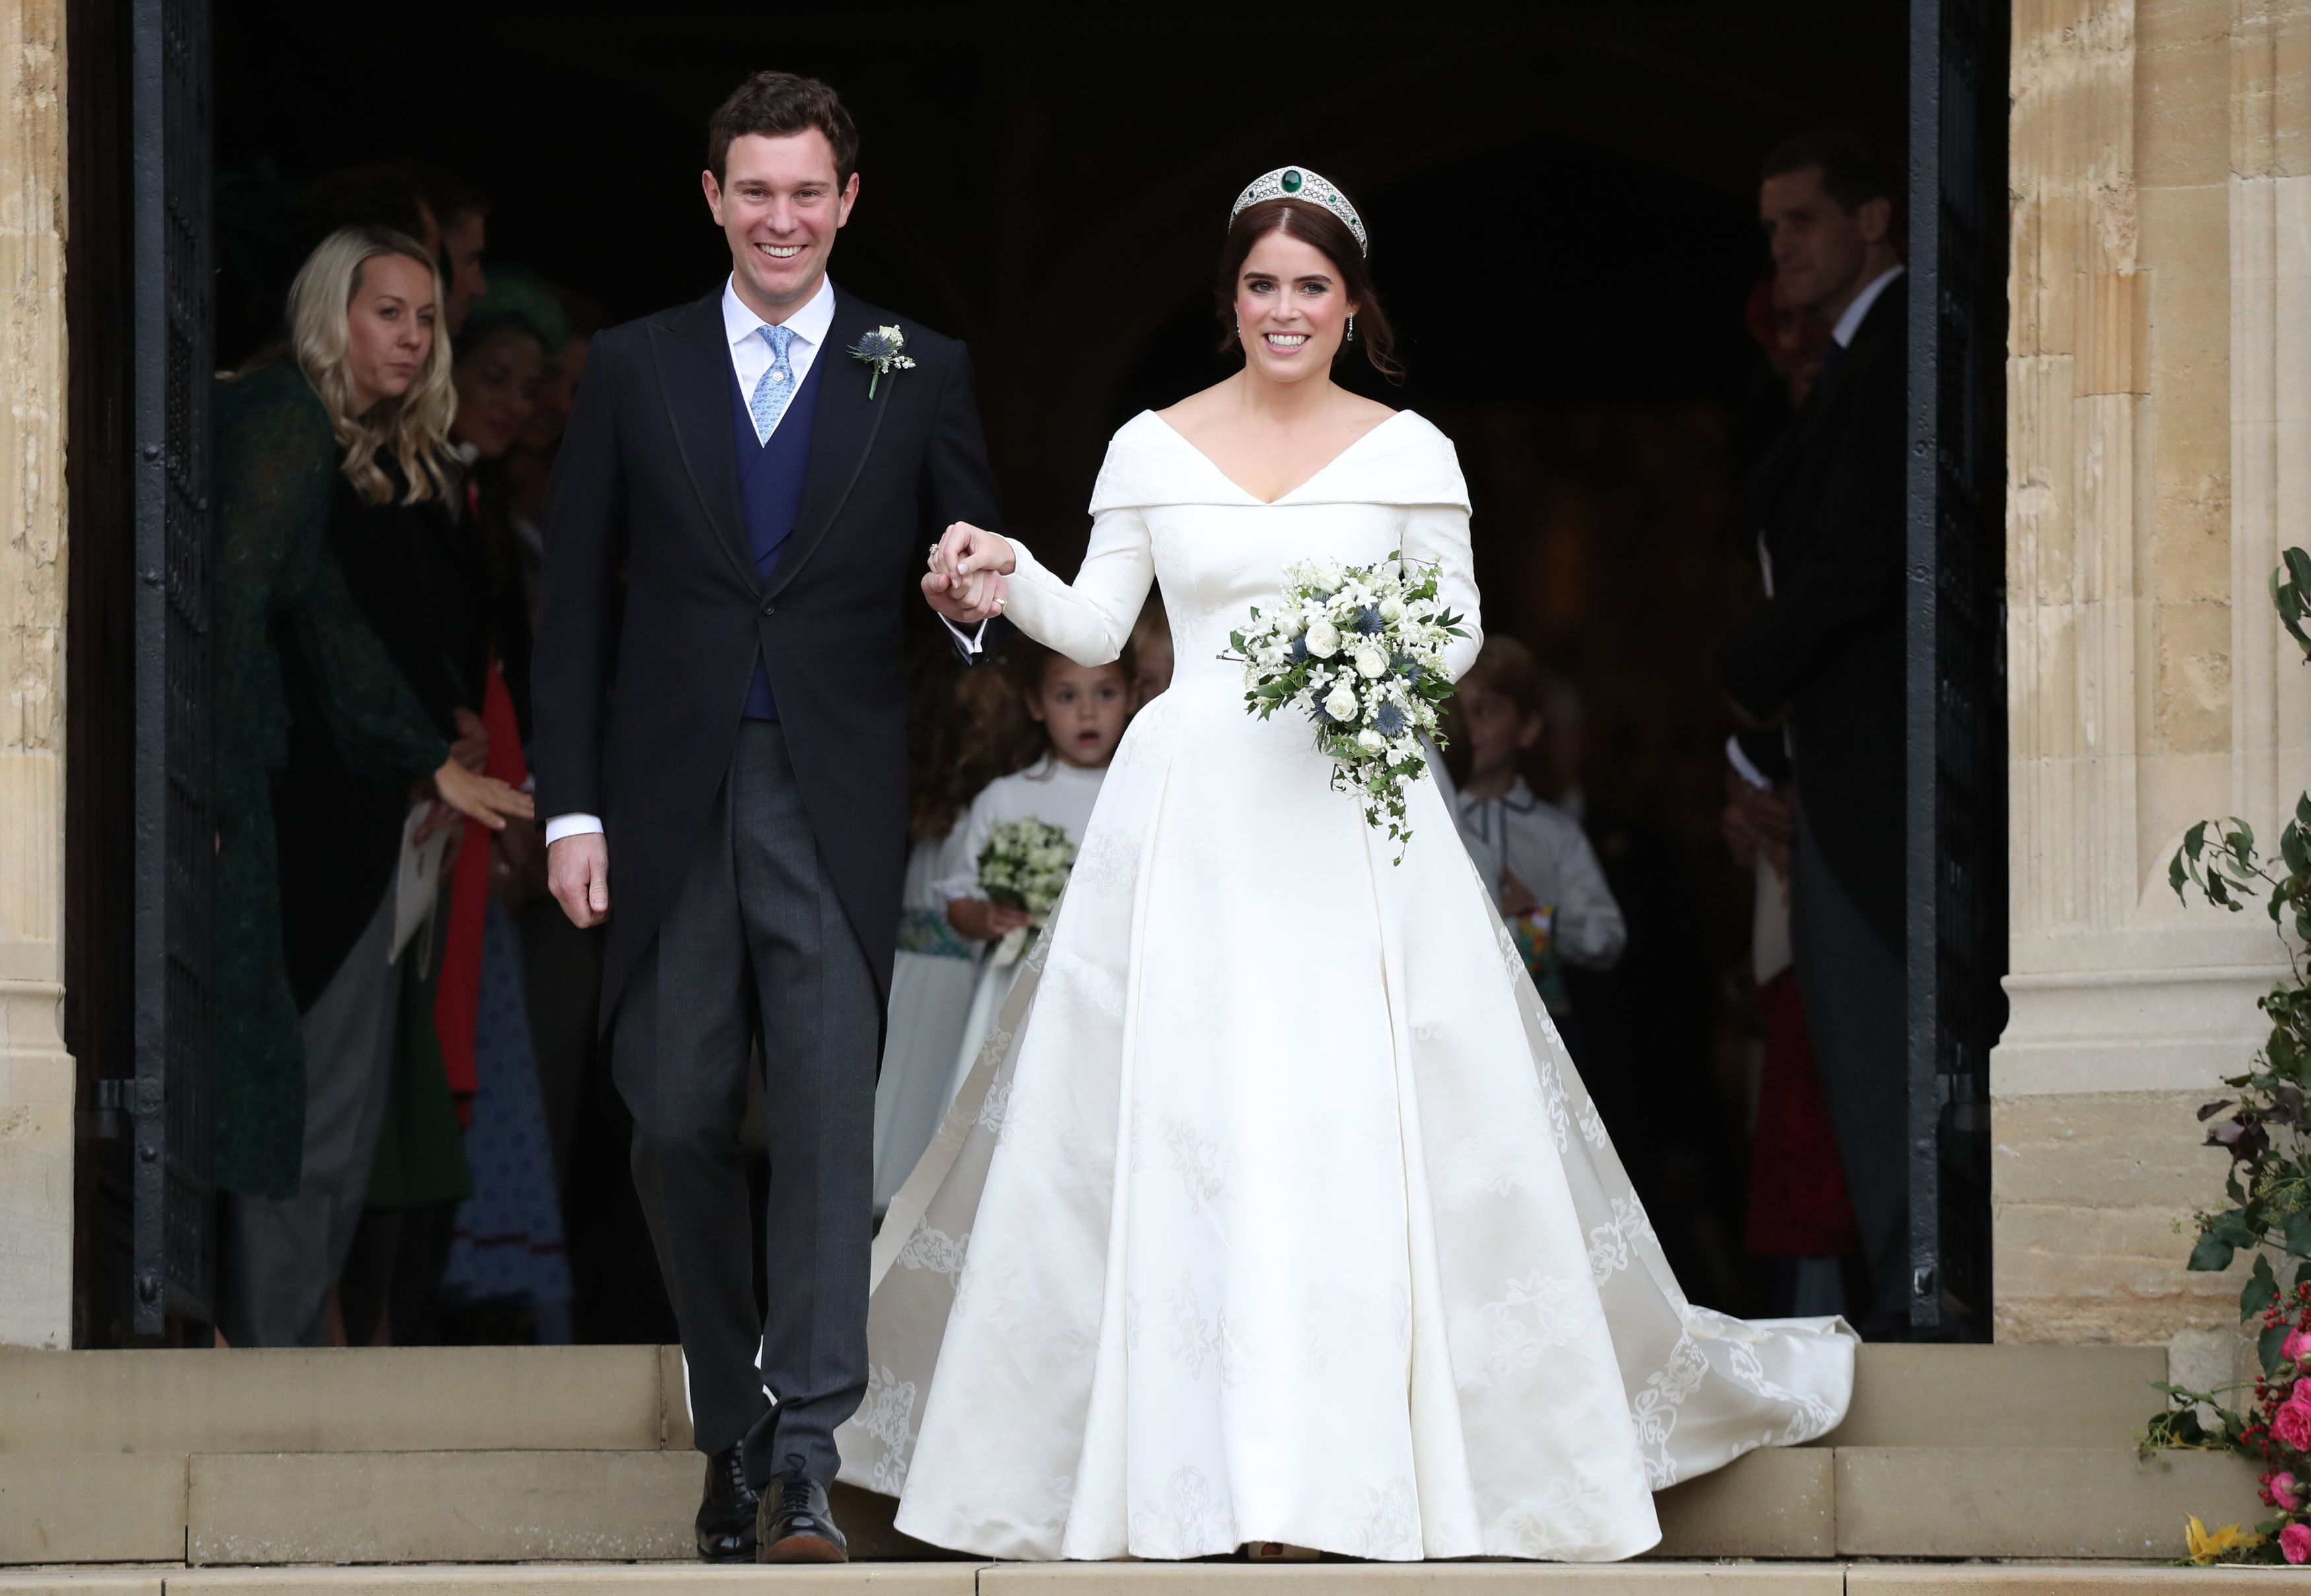 Princess Eugenie of York and her husband Jack Brooksbank on the steps of St George's Chapel after their wedding at St. George's Chapel on October 12, 2018 in Windsor, England | Photo: Getty Images